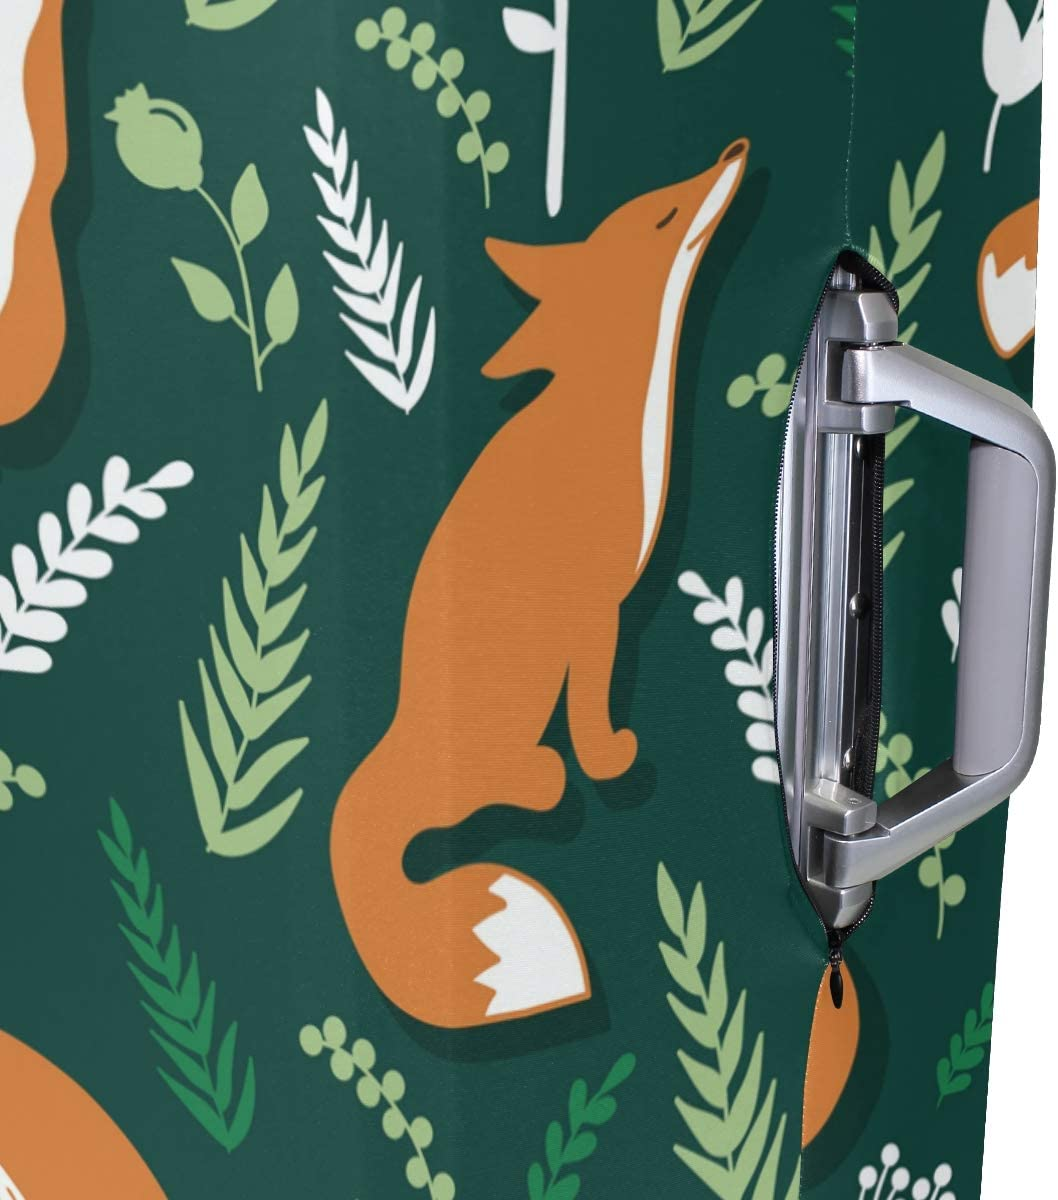 Travel Luggage Cover Cute Orange Foxes Wicker Green Suitcase Protector